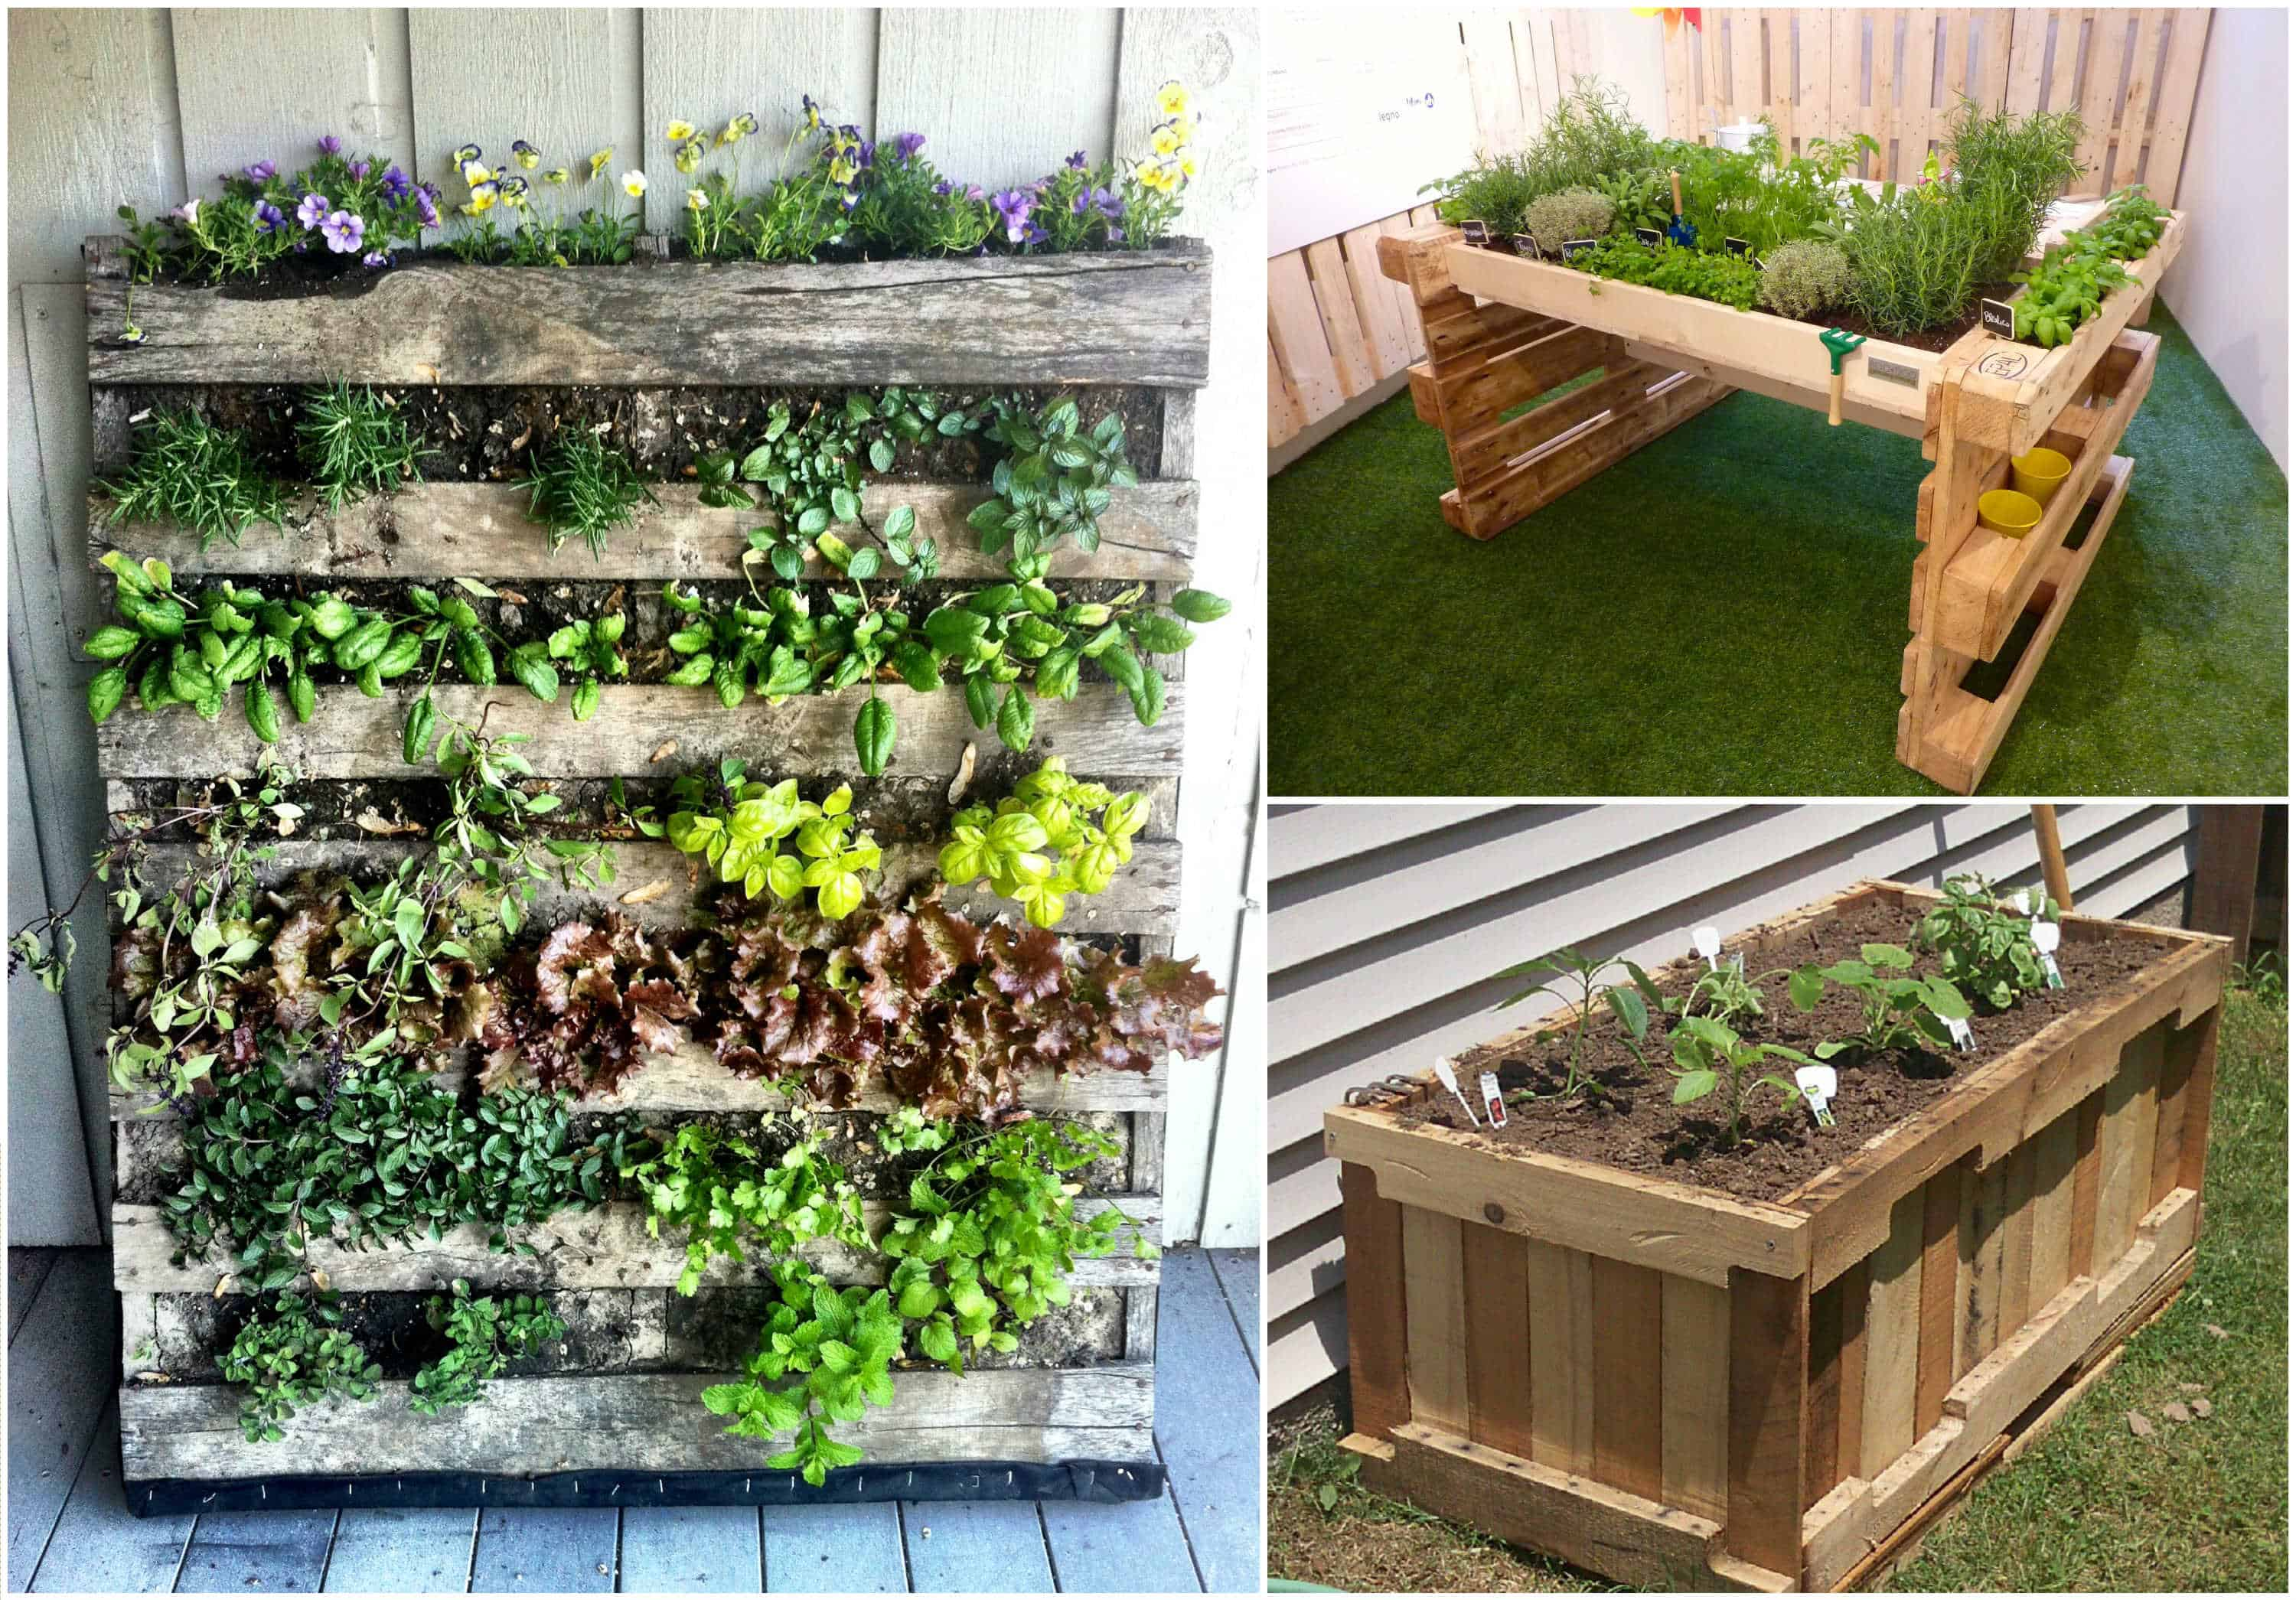 Reusing Old Pallets for Garden Projects • Pallet Ideas • 1001 ...